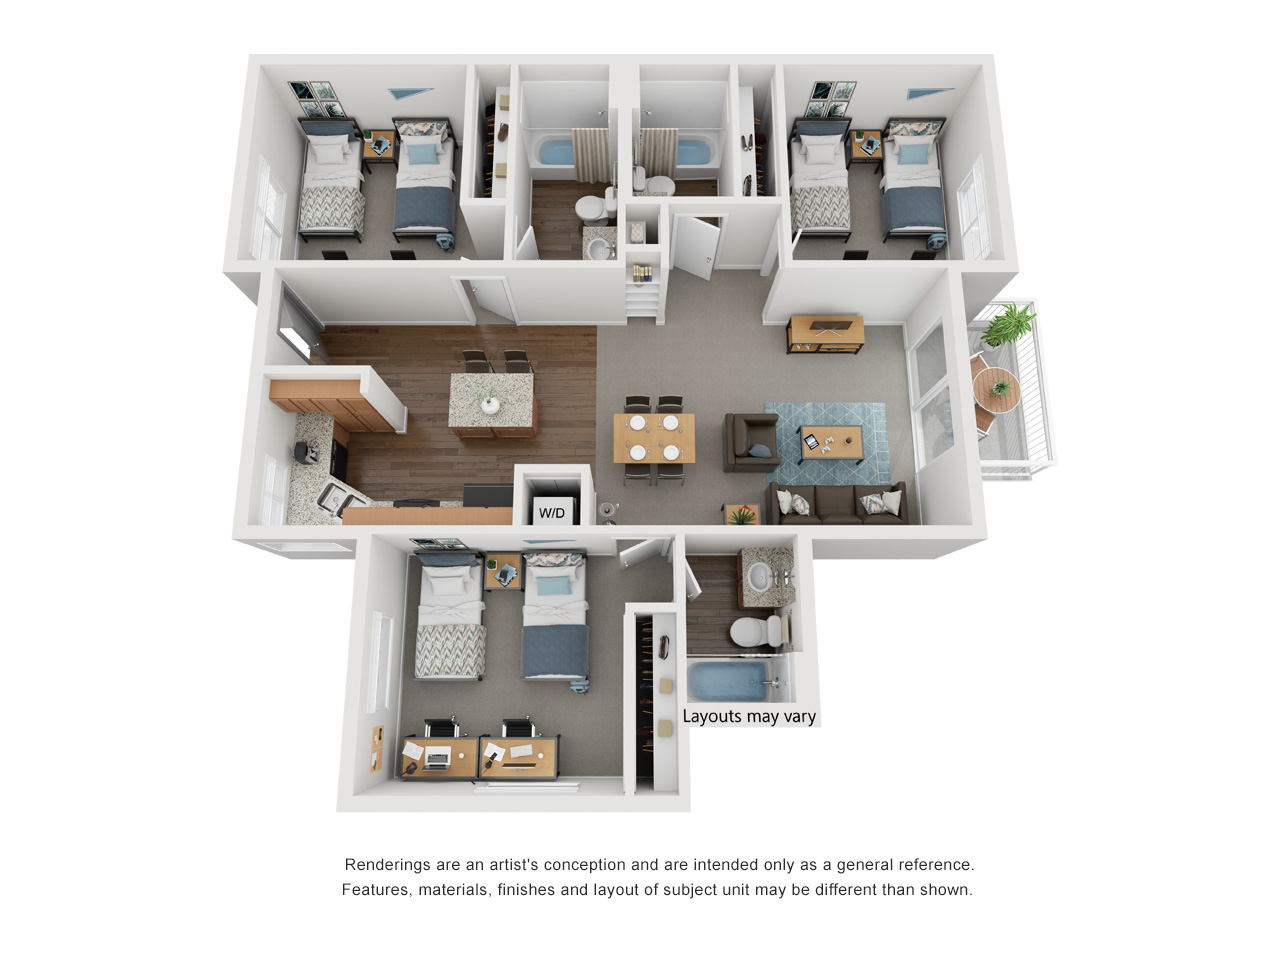 Artists conceptual rendering of a single story, three bedrooms, three bathrooms, depicting two beds per room, open layout kitchen and living, with a fenced patio.